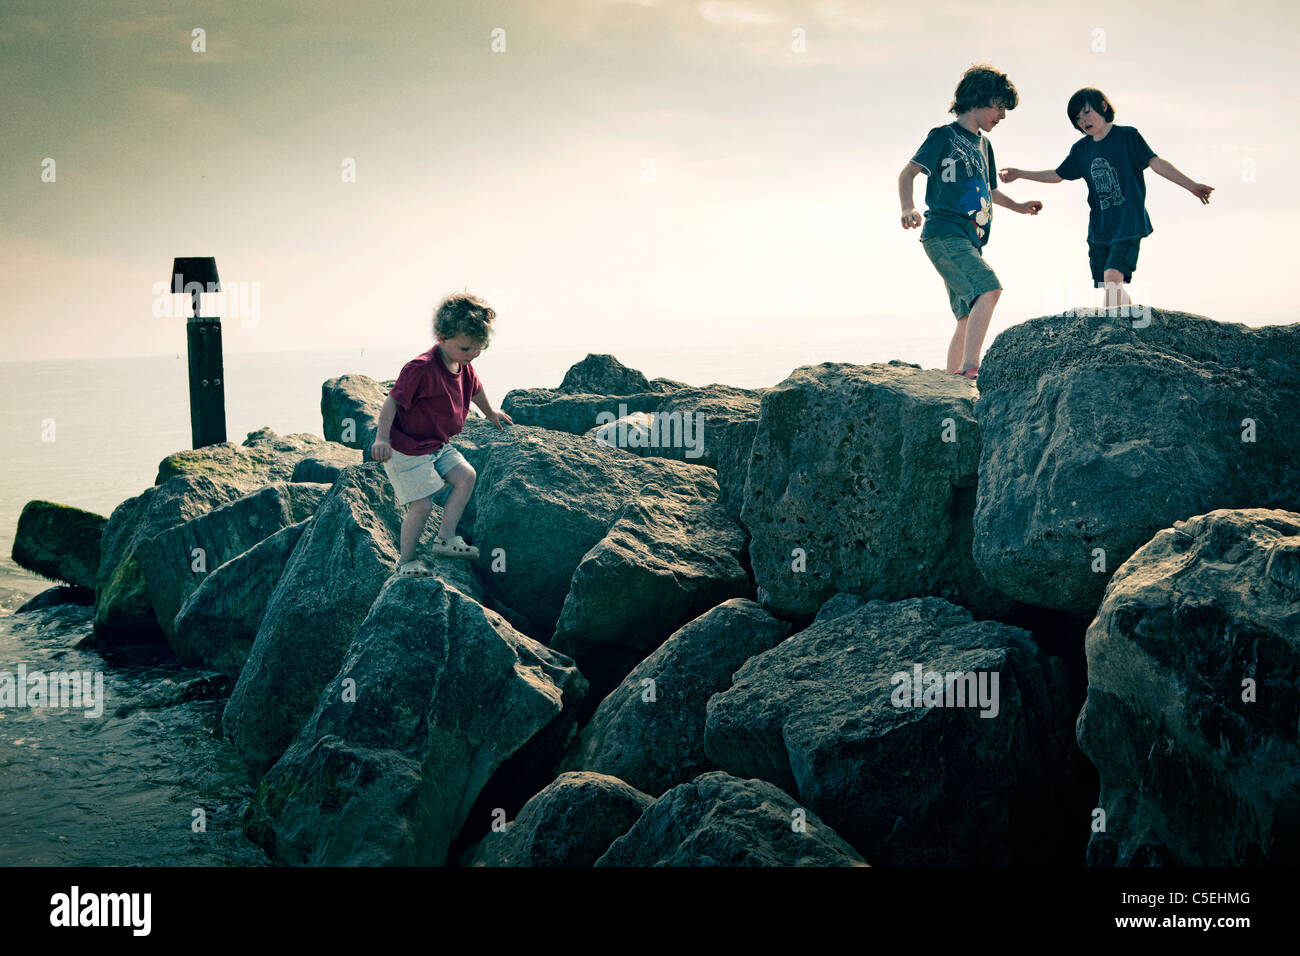 Boys playing on rocks by the sea - Stock Image